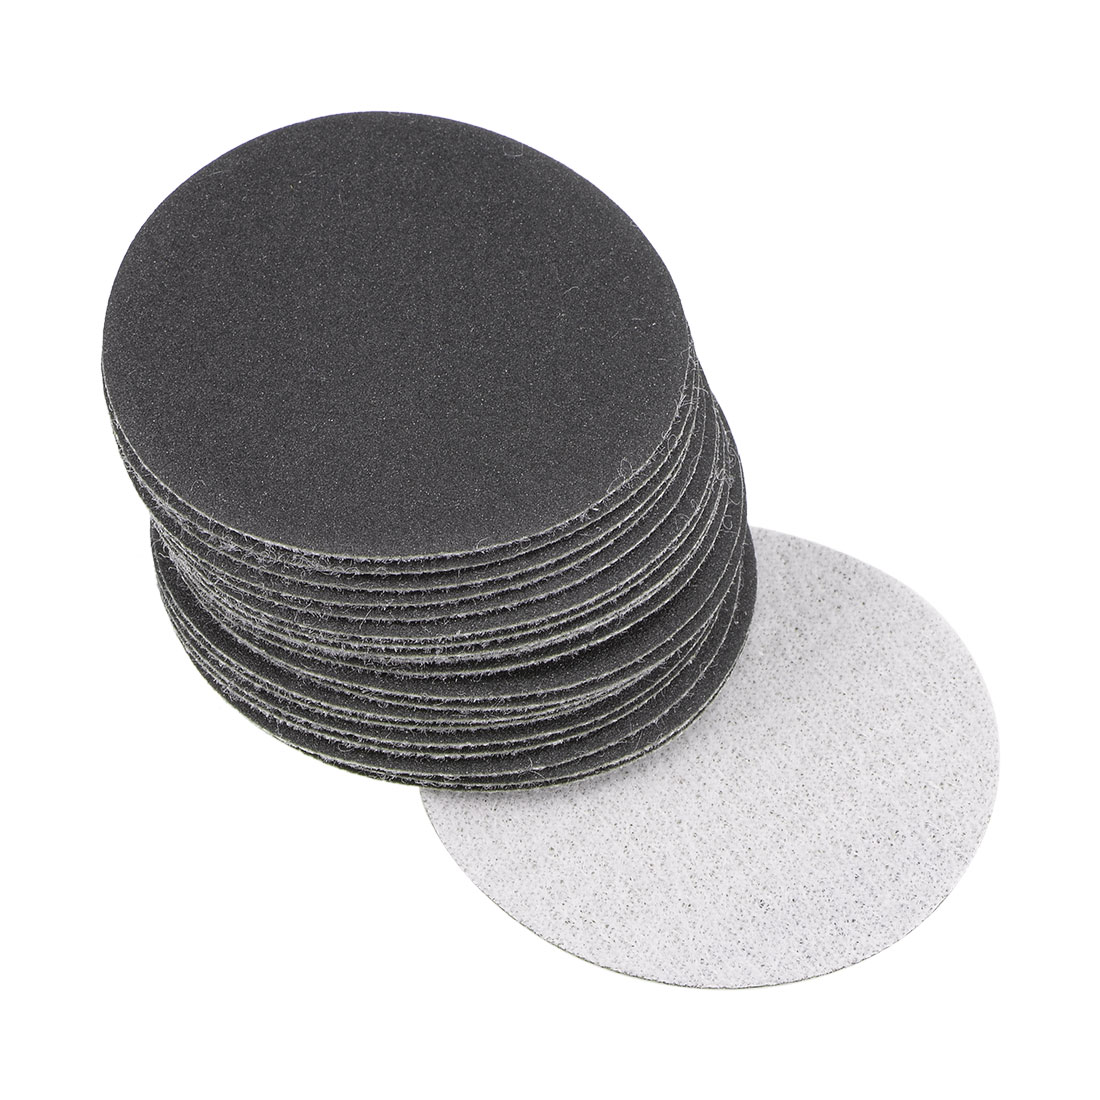 2 inch Wet Dry Discs 400 Grit Hook and Loop Sanding Disc Silicon Carbide 20pcs